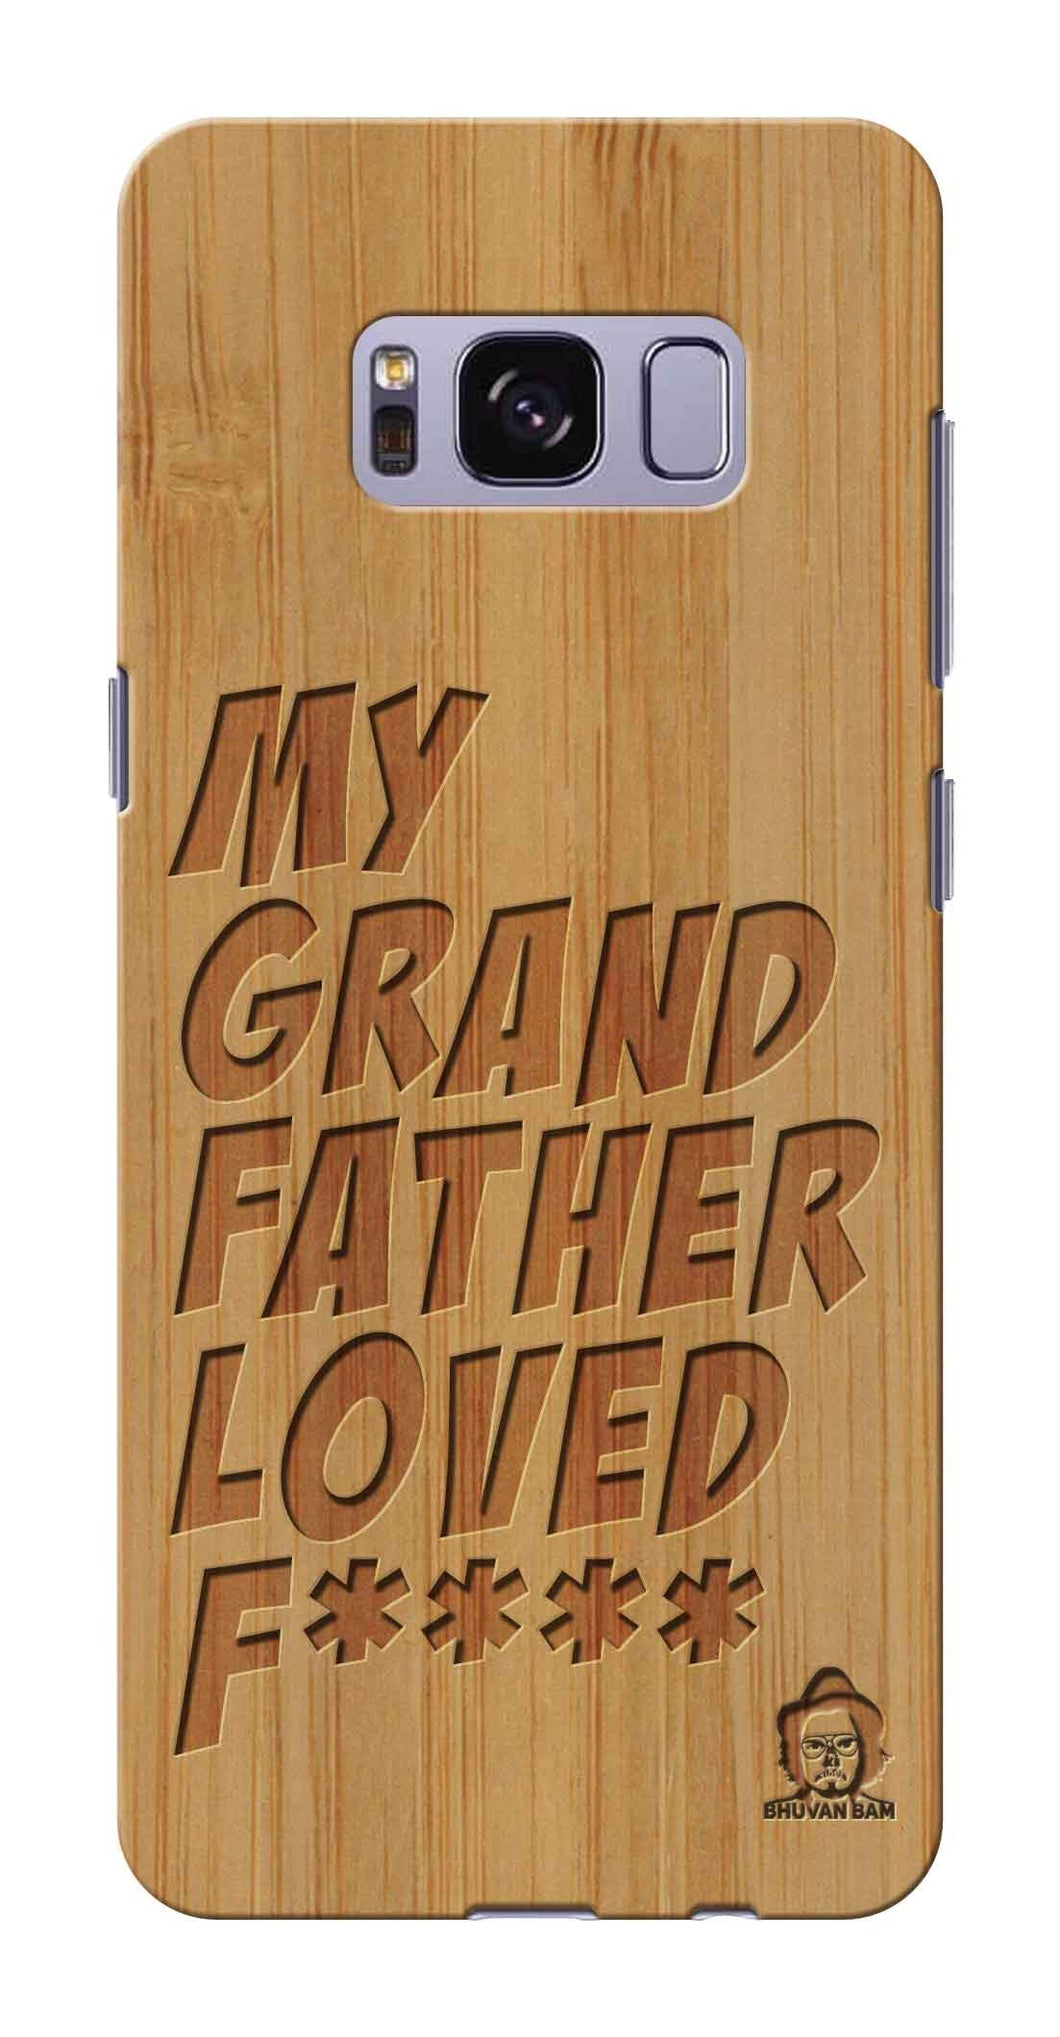 Bamboo Wood Sameer Fudd*** Edition for Samsung galaxy s8 plus